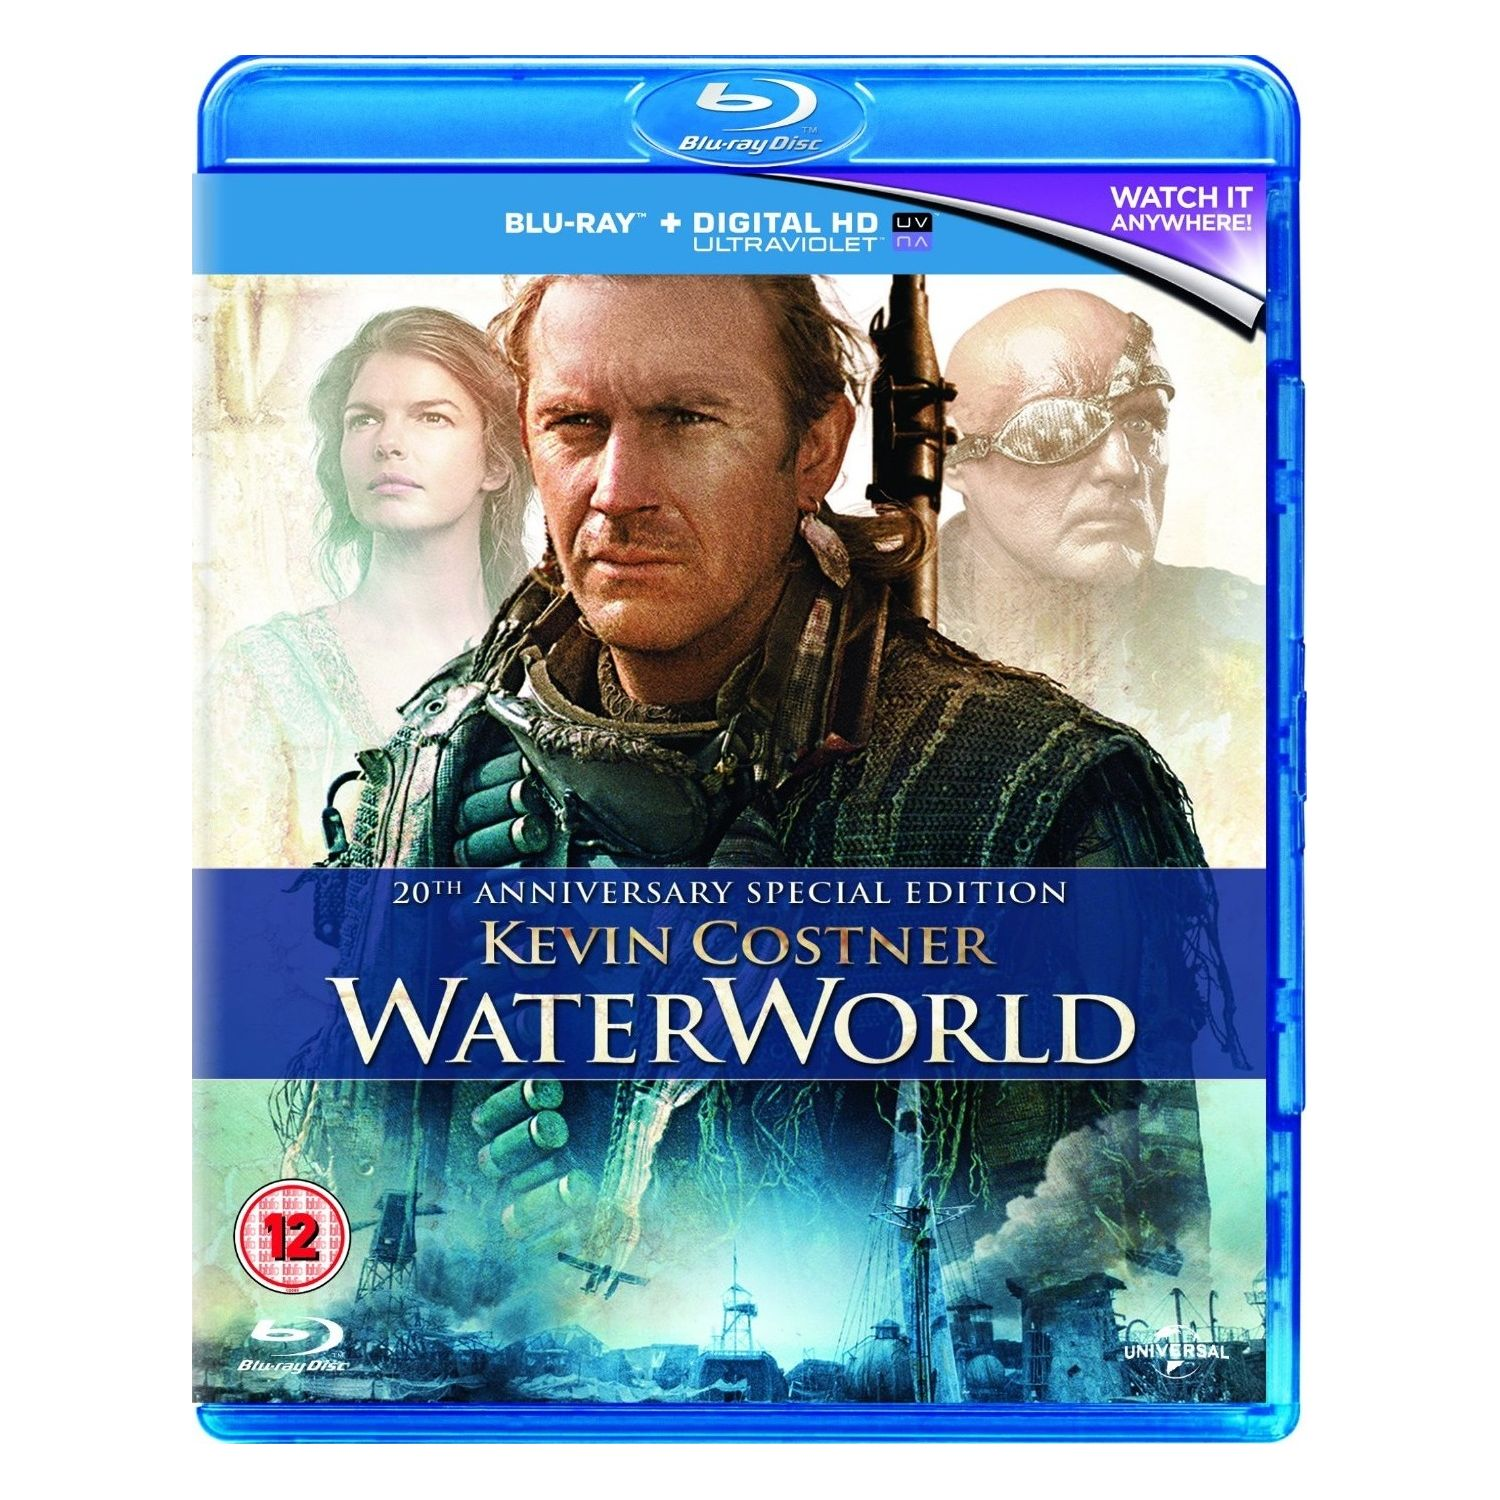 WATERWORLD - ΥΔΑΤΙΝΟΣ ΚΟΣΜΟΣ 20th Anniversary Special Edition (BLU-RAY)